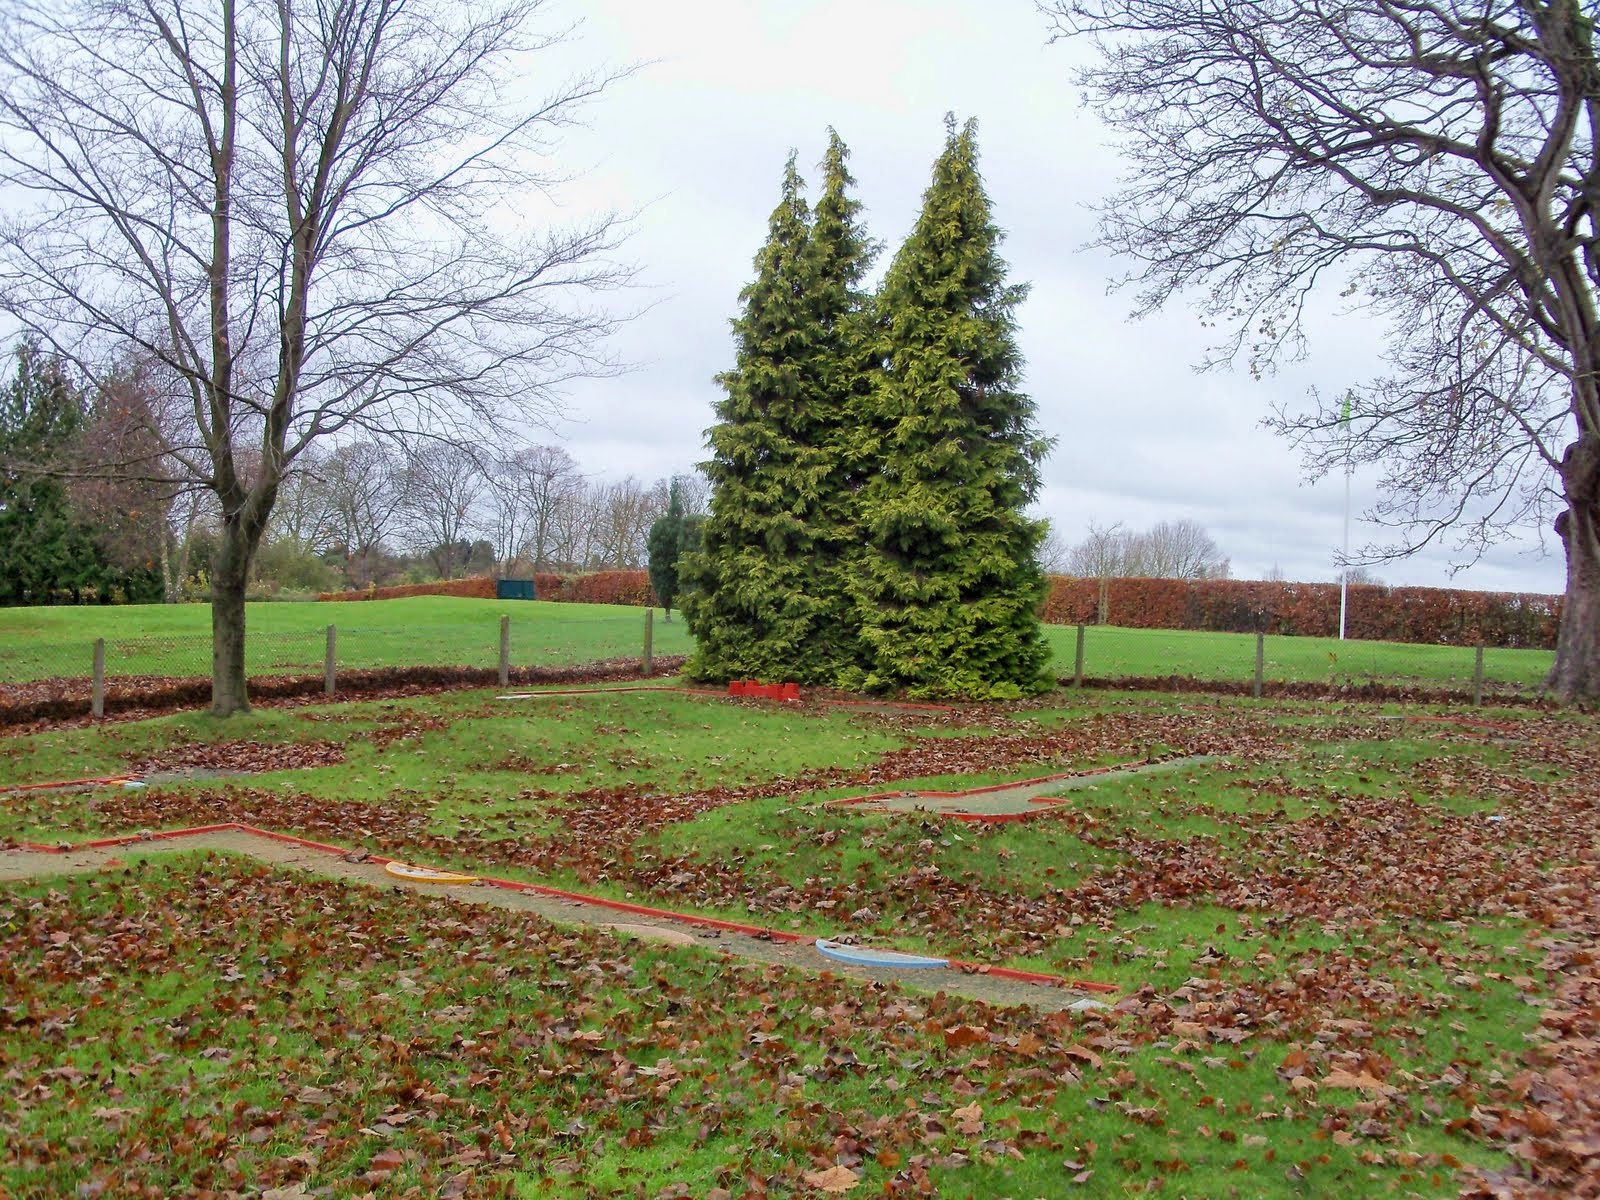 An Autumn/Winter look to the Crazy Golf course Wardown Park, Luton in November 2011